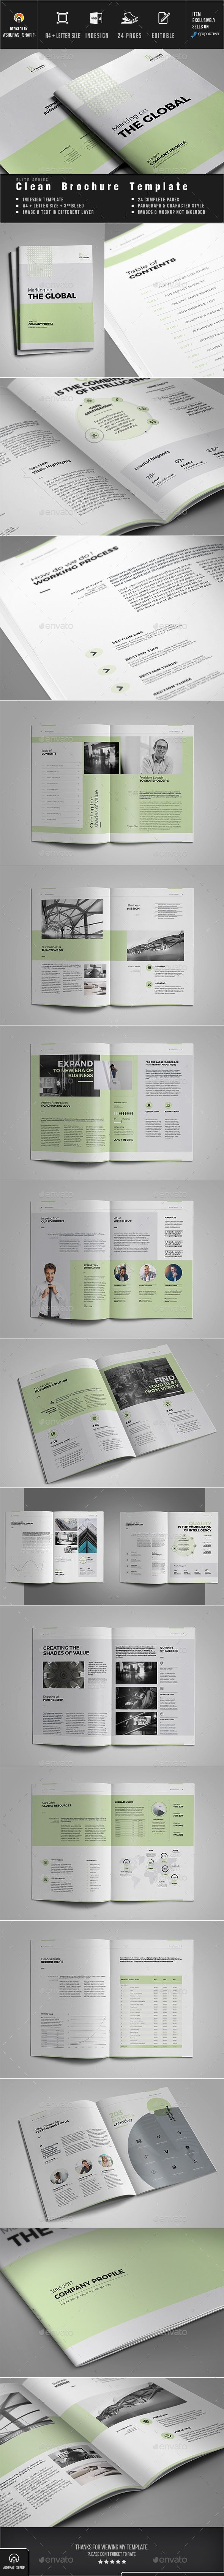 Brochure Template InDesign INDD